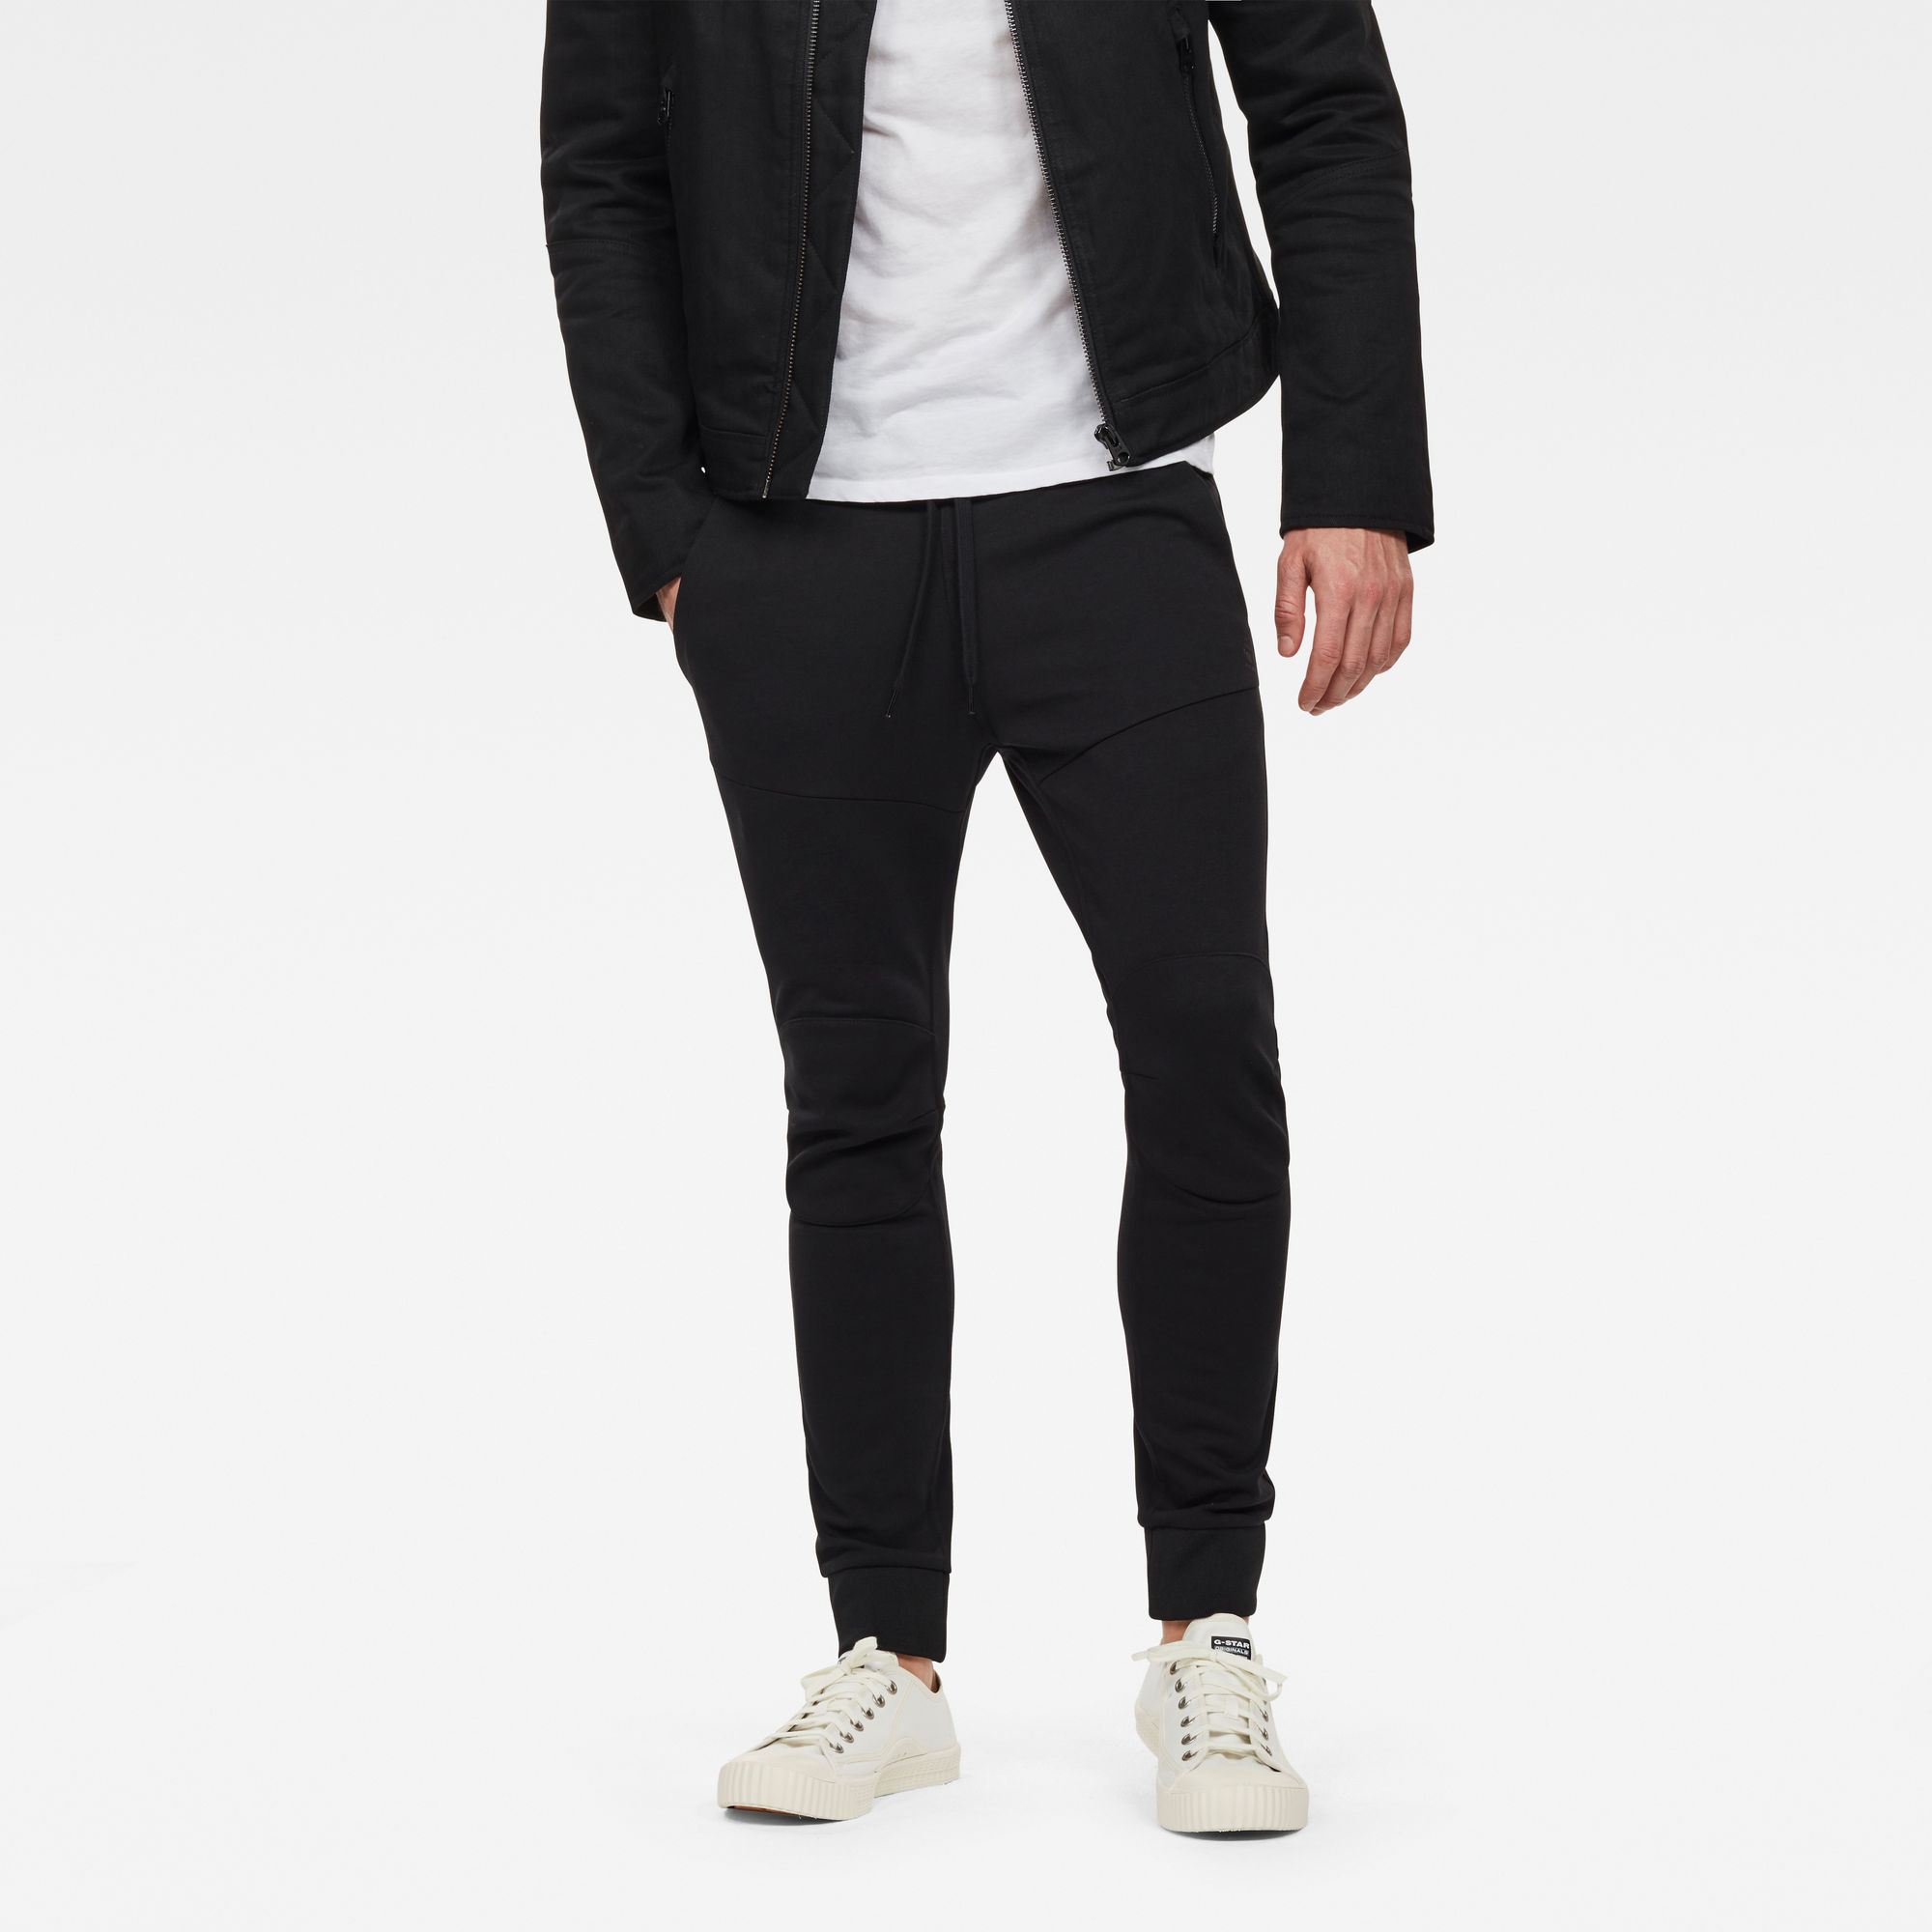 5621 Slim Tapered Sweatpants